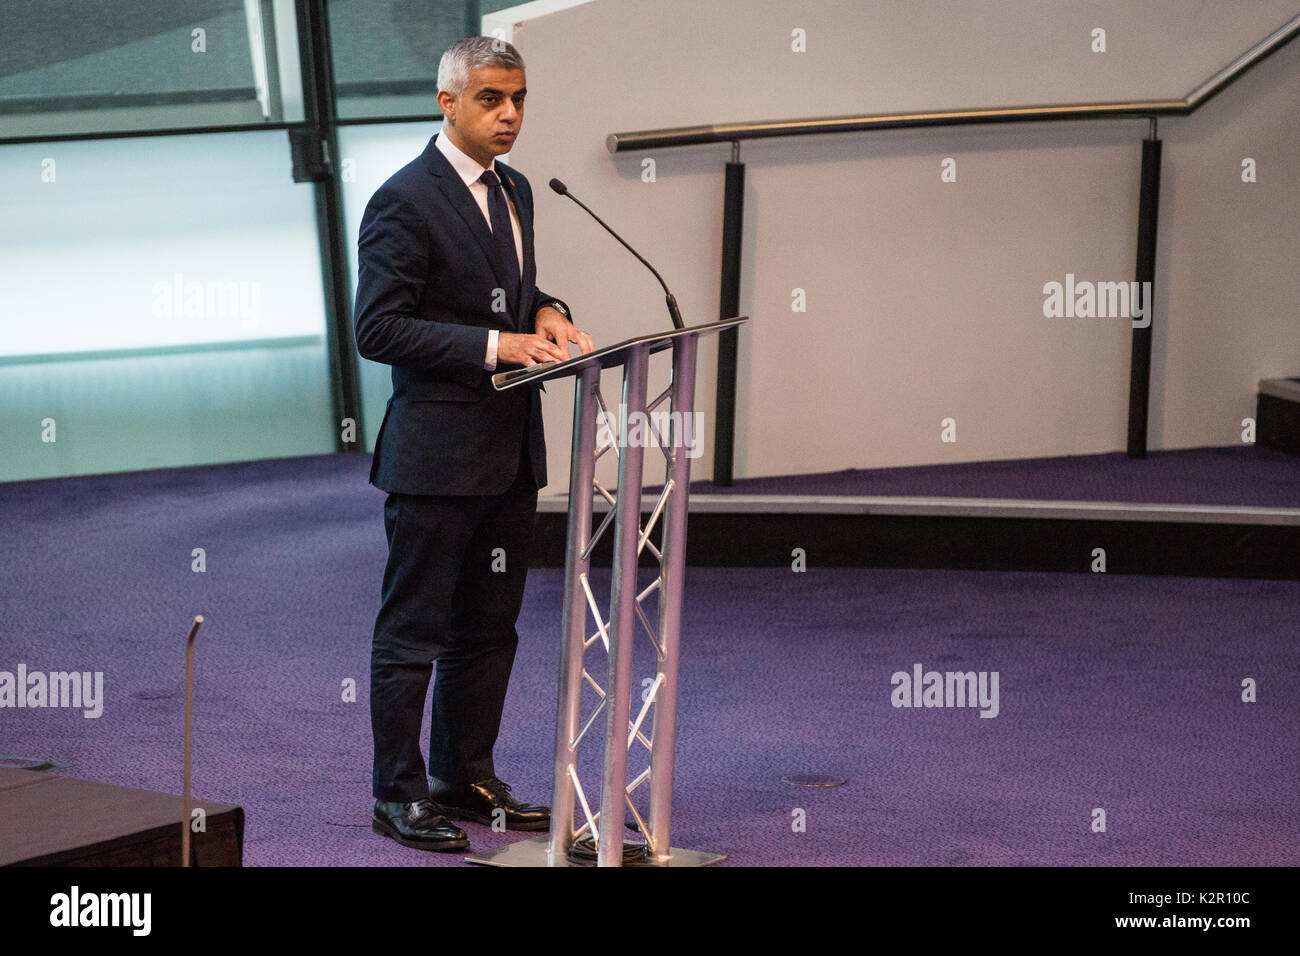 London, UK. 10th Nov, 2017. Sadiq Khan, Mayor of London, addresses the Annual Service of Remembrance at City Hall, attended by Jennette Arnold OBE AM, Chair of the London Assembly, Members of Parliament, London Assembly Members, Greater London Authority staff, representatives from London Government and public service organisations, and members of the Armed Forces, to commemorate those who served and lost their lives in the two world wars and other conflicts. Credit: Mark Kerrison/Alamy Live News - Stock Image